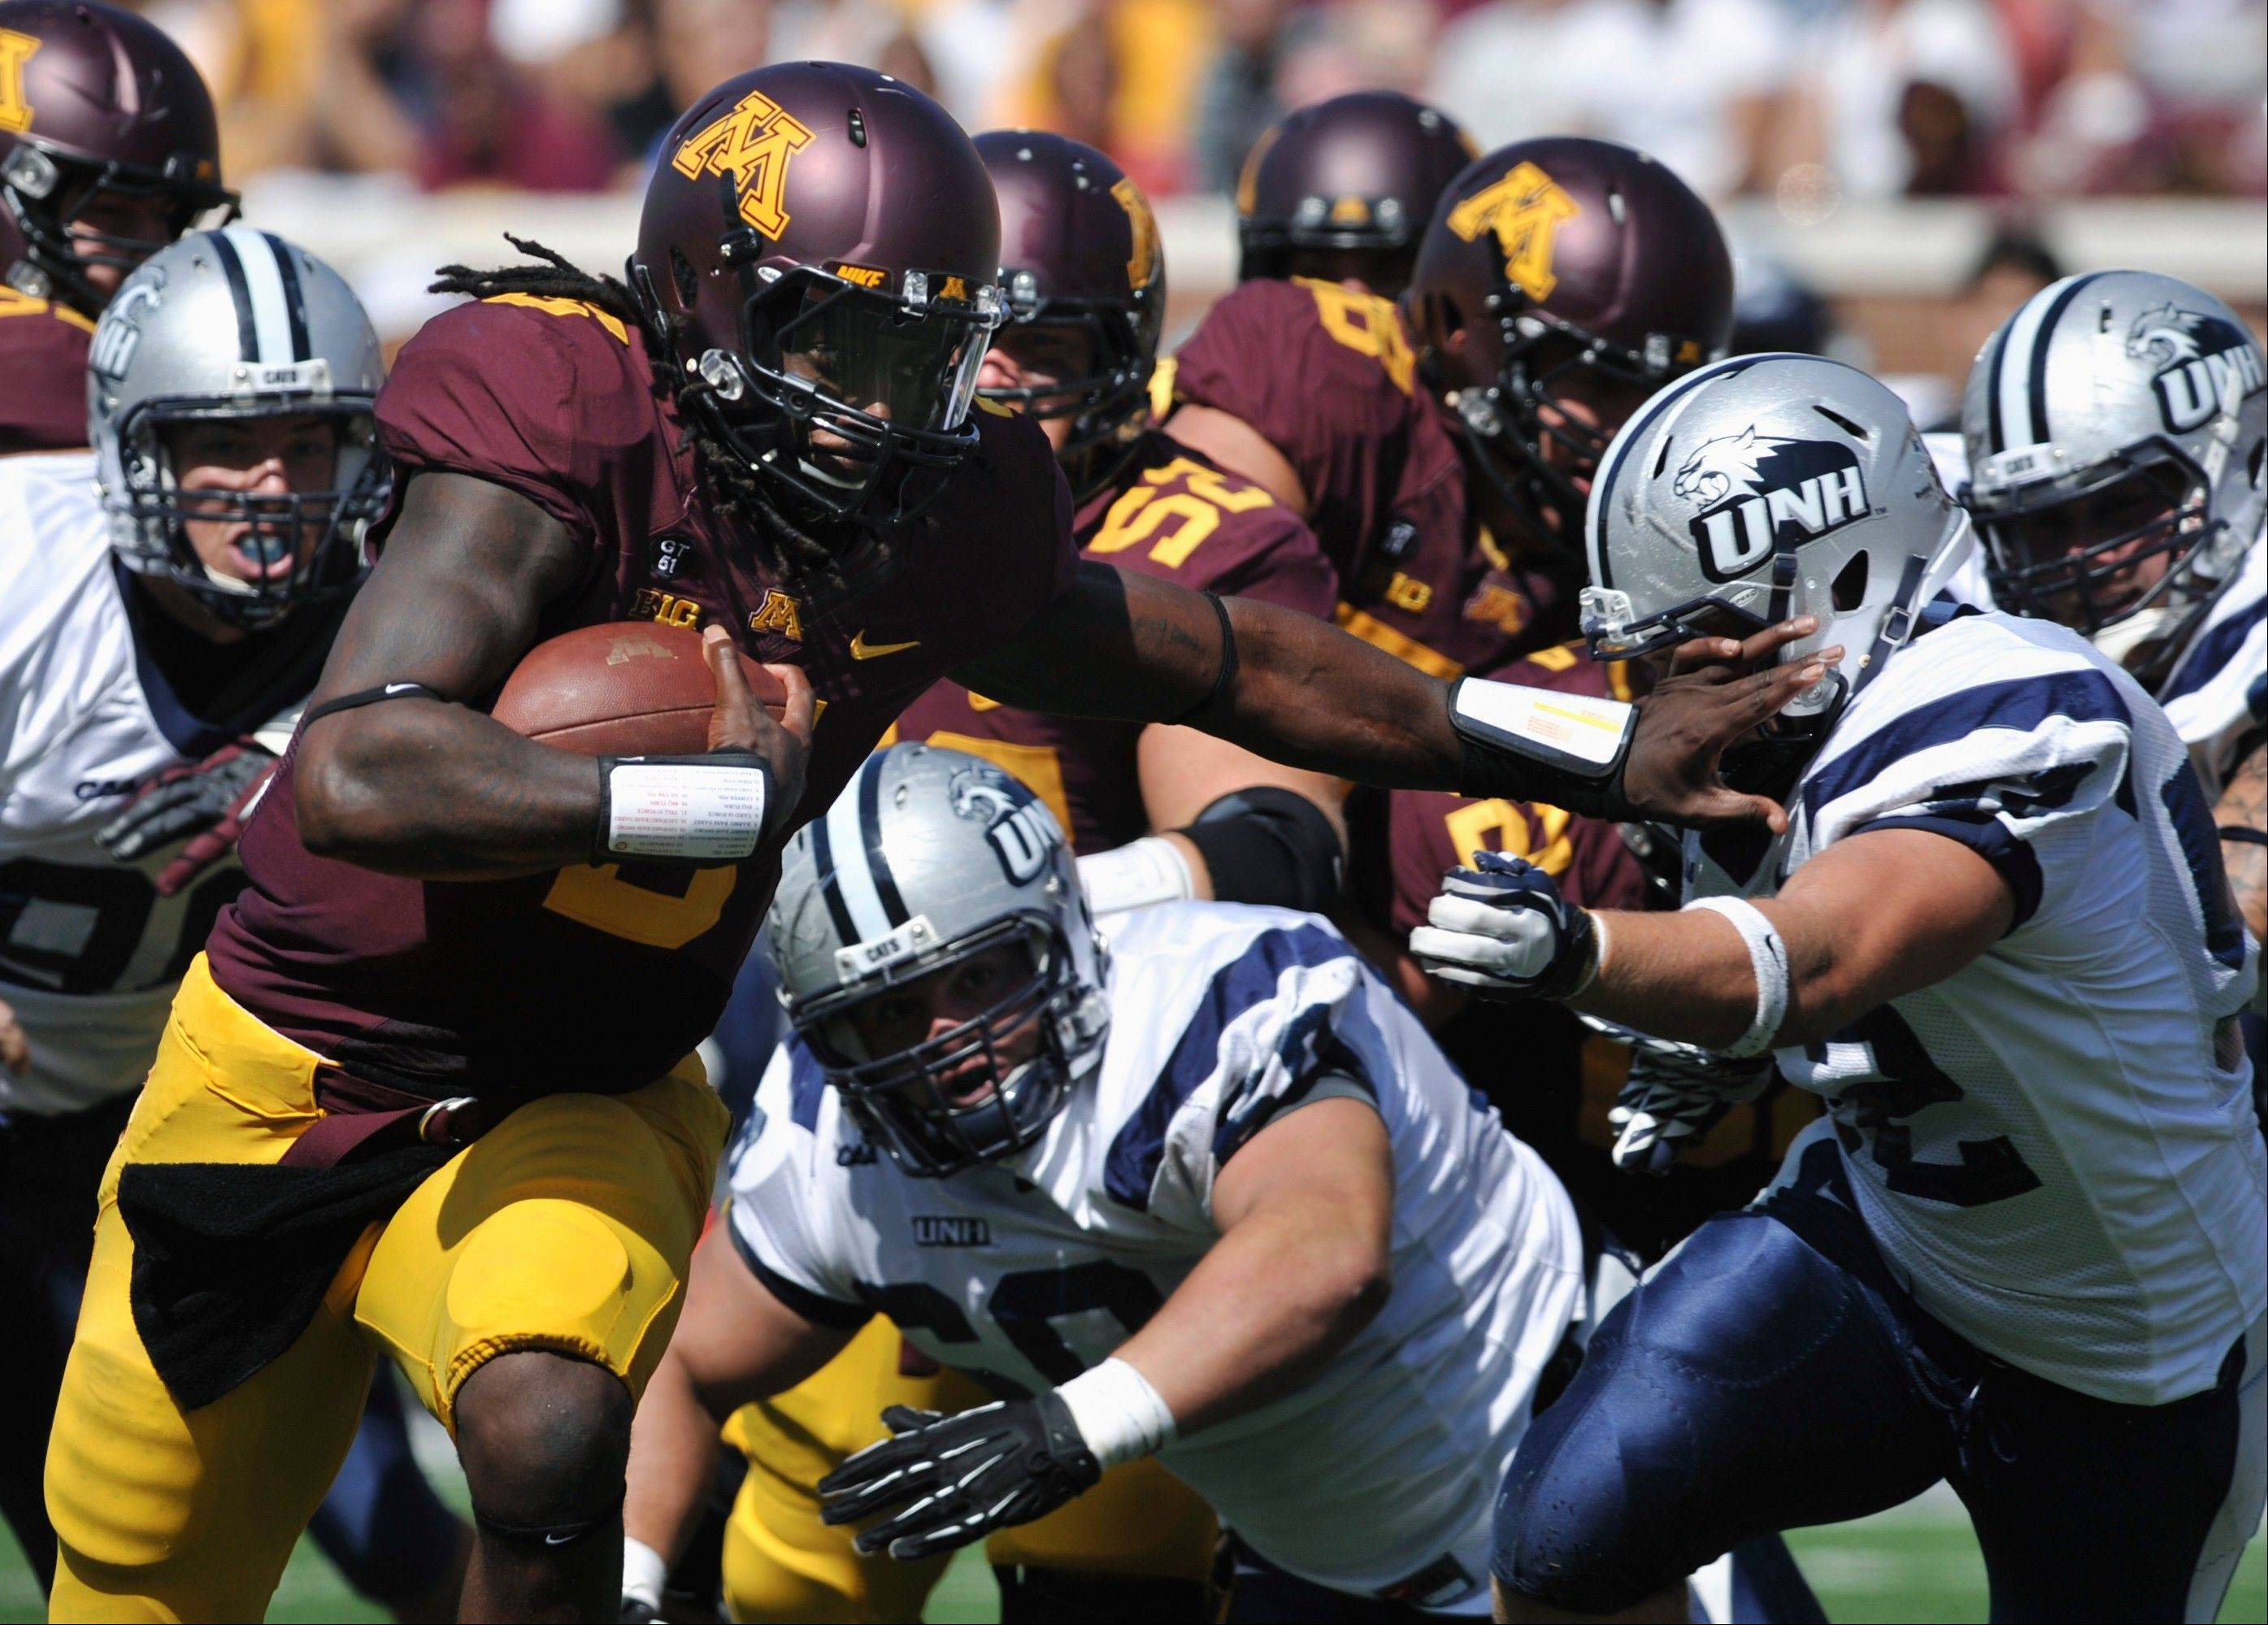 Minnesota quarterback MarQueis Gray, left, gives New Hampshire's Matt Evans a stiff-arm on a touchdown run during the second quarter Saturday in Minneapolis.